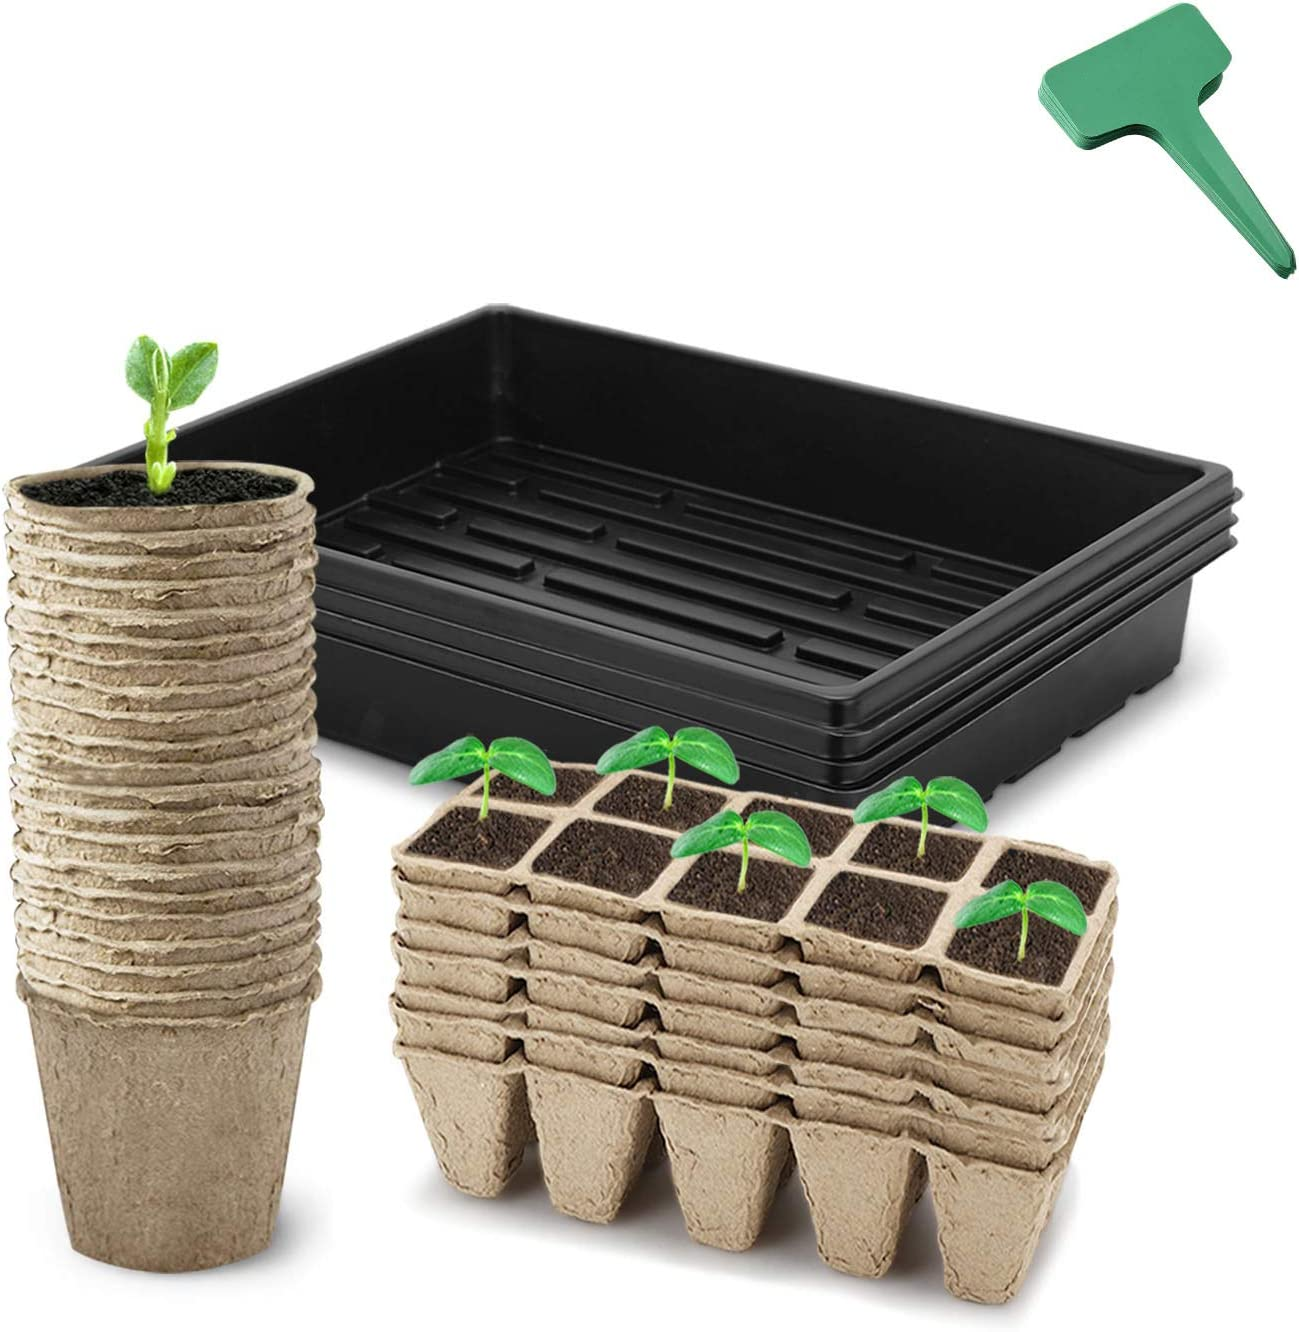 CEED4U Seed Starter Kit, 3 Inches Peat Pots, 80 Cells Peat Trays, 15x11 Inches Growing Trays, 15 Packs Plant Labels, Plant Cultivation Set for Gardeners, Classrooms, Greenhouse, DIY Projects